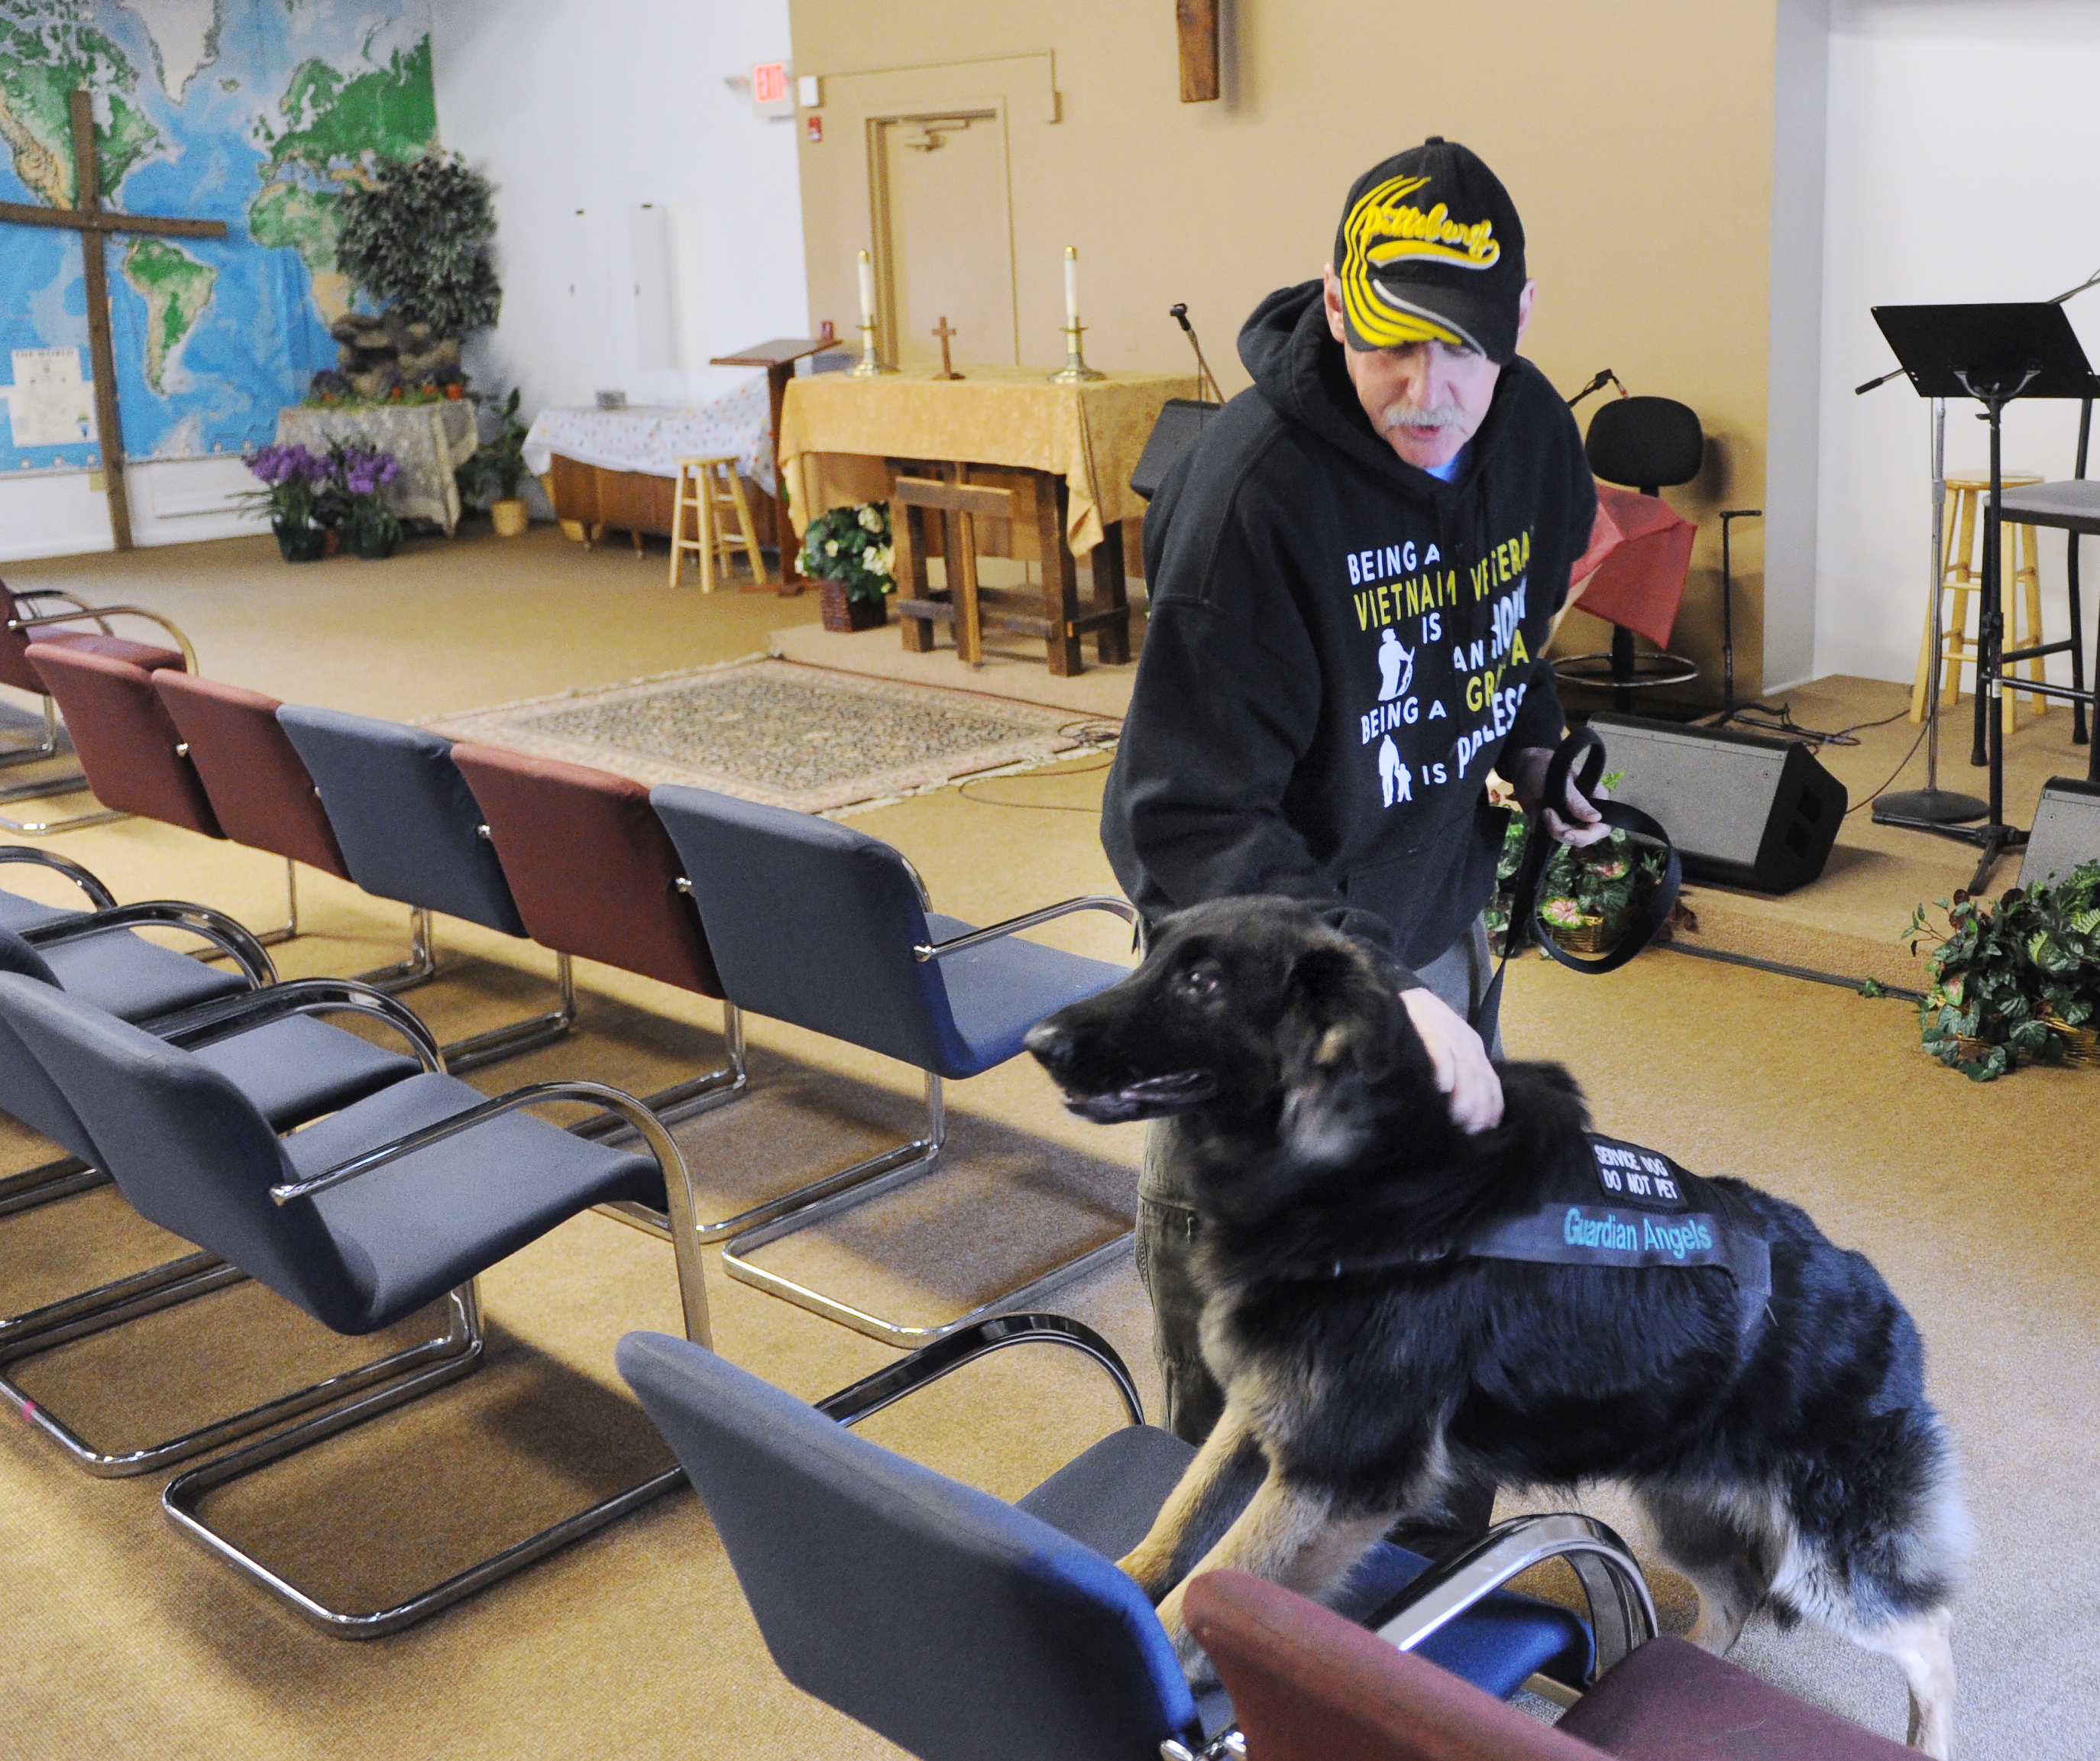 20170120ng-dog2-1 Bill Fennell of Carnegie works with Faith, a 4-year-old German shepherd during training at the Shepherd's Heart Veteran's Home in January 2017.